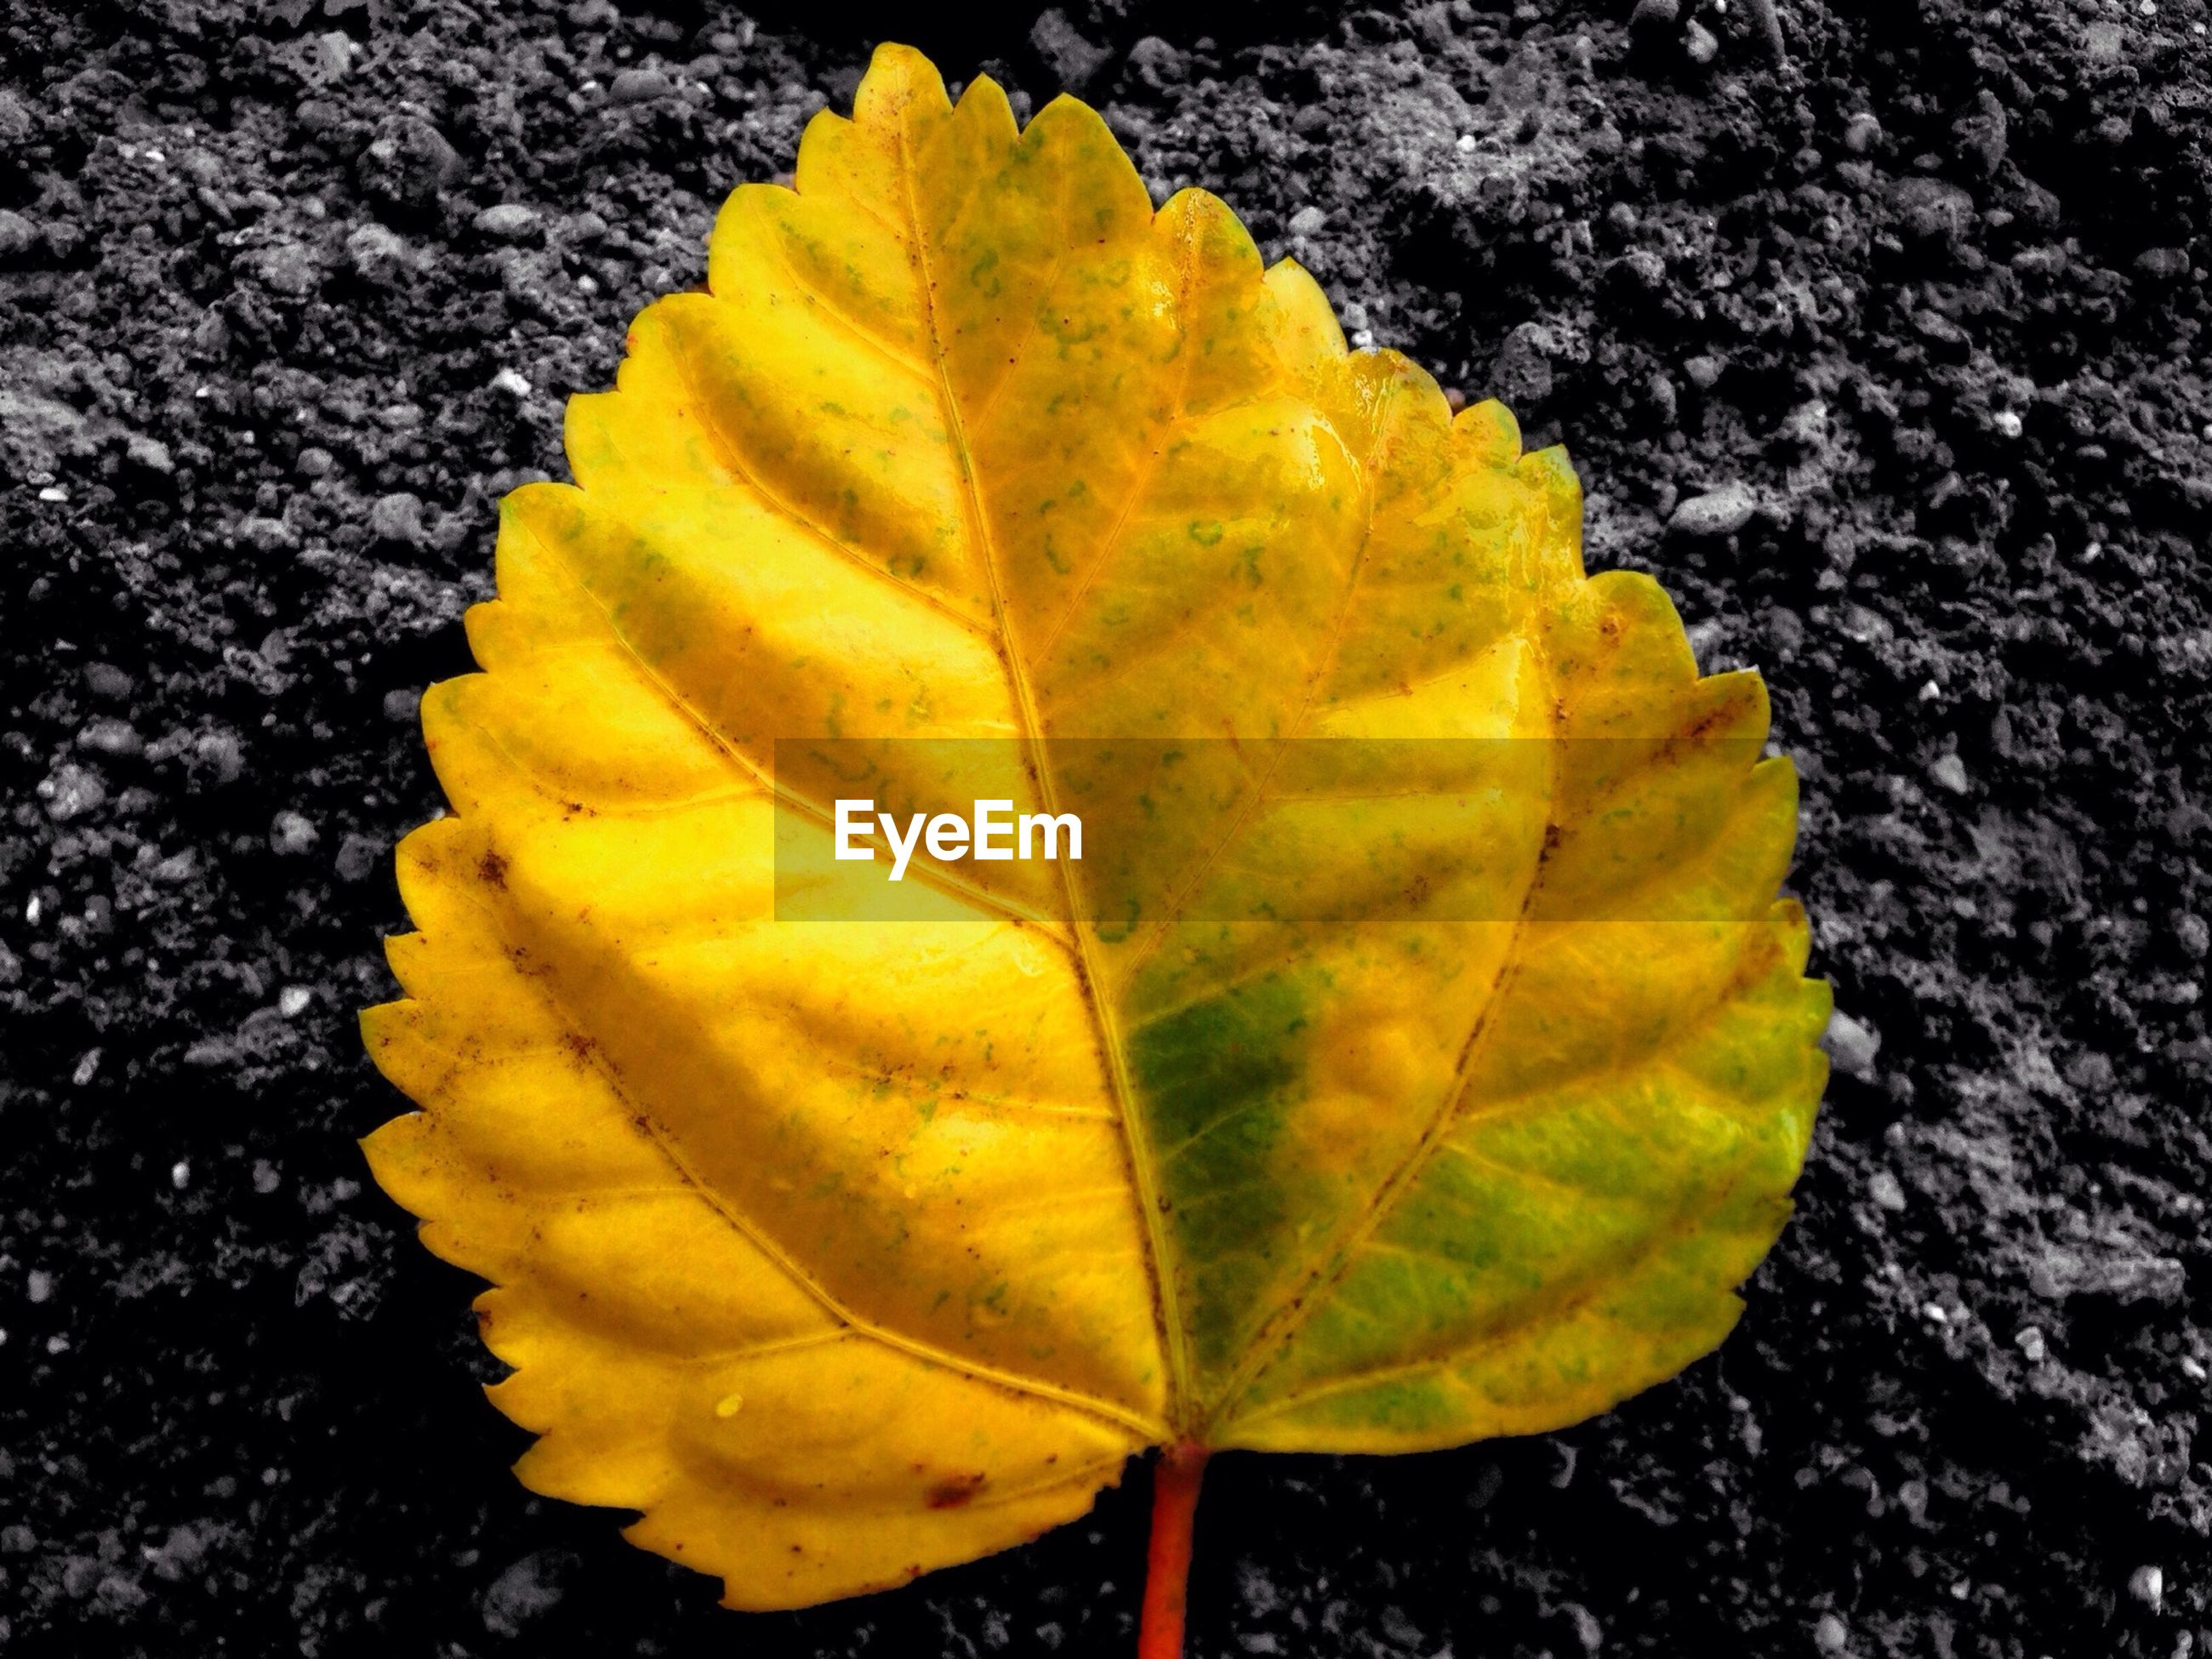 leaf, yellow, leaf vein, autumn, nature, high angle view, close-up, natural pattern, fragility, growth, change, beauty in nature, leaves, outdoors, day, no people, season, green color, textured, sunlight